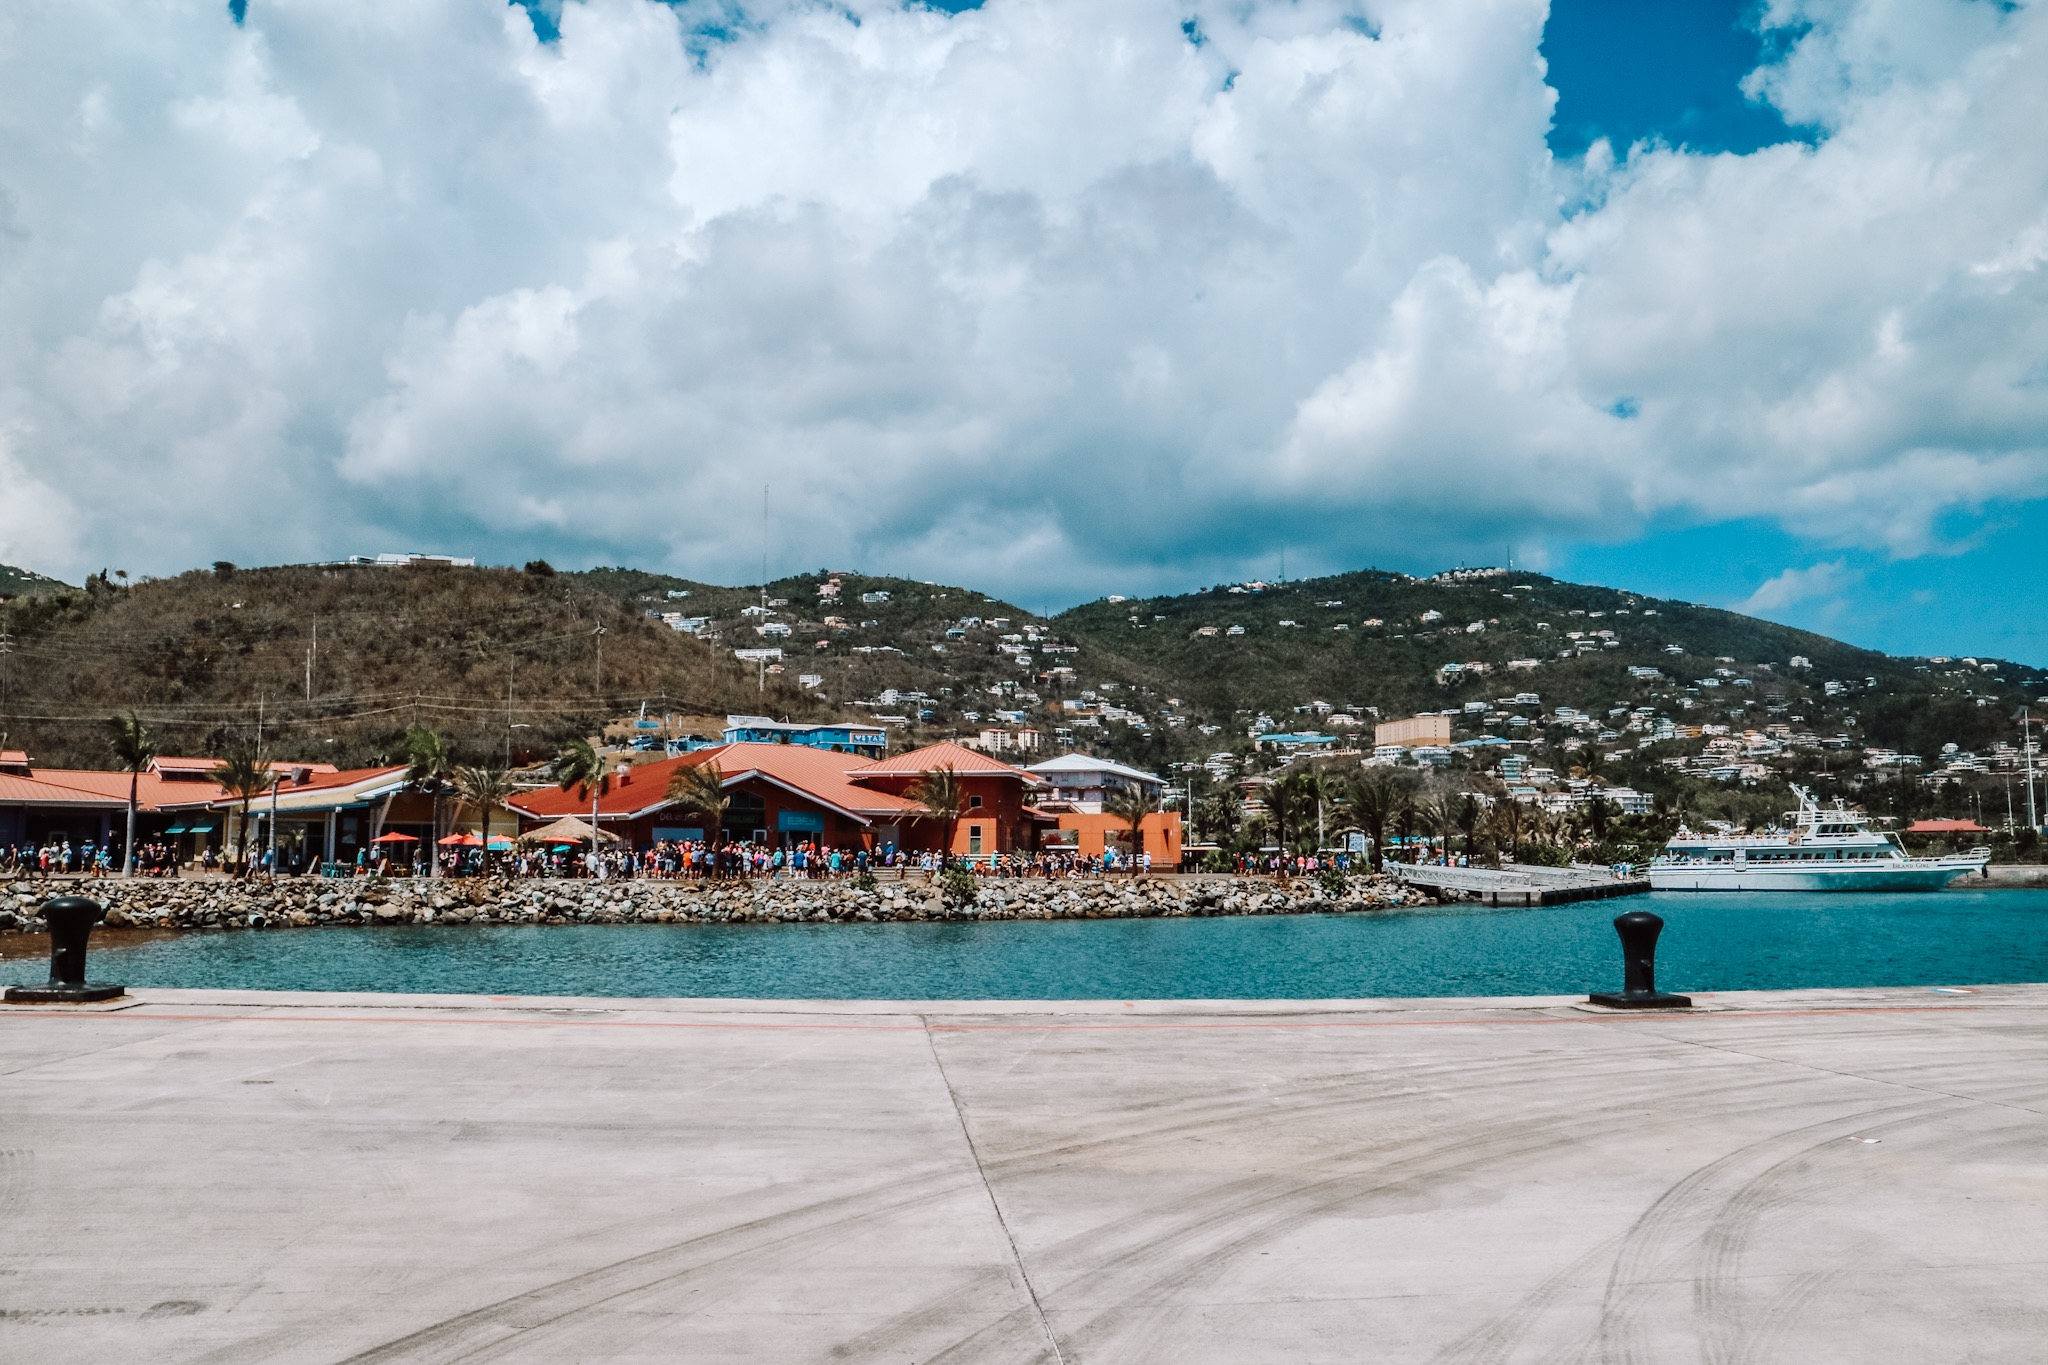 Photo Diary: Royal Caribbean's Oasis of the Seas (Visiting Nassau, St. Thomas, St. Marteen)